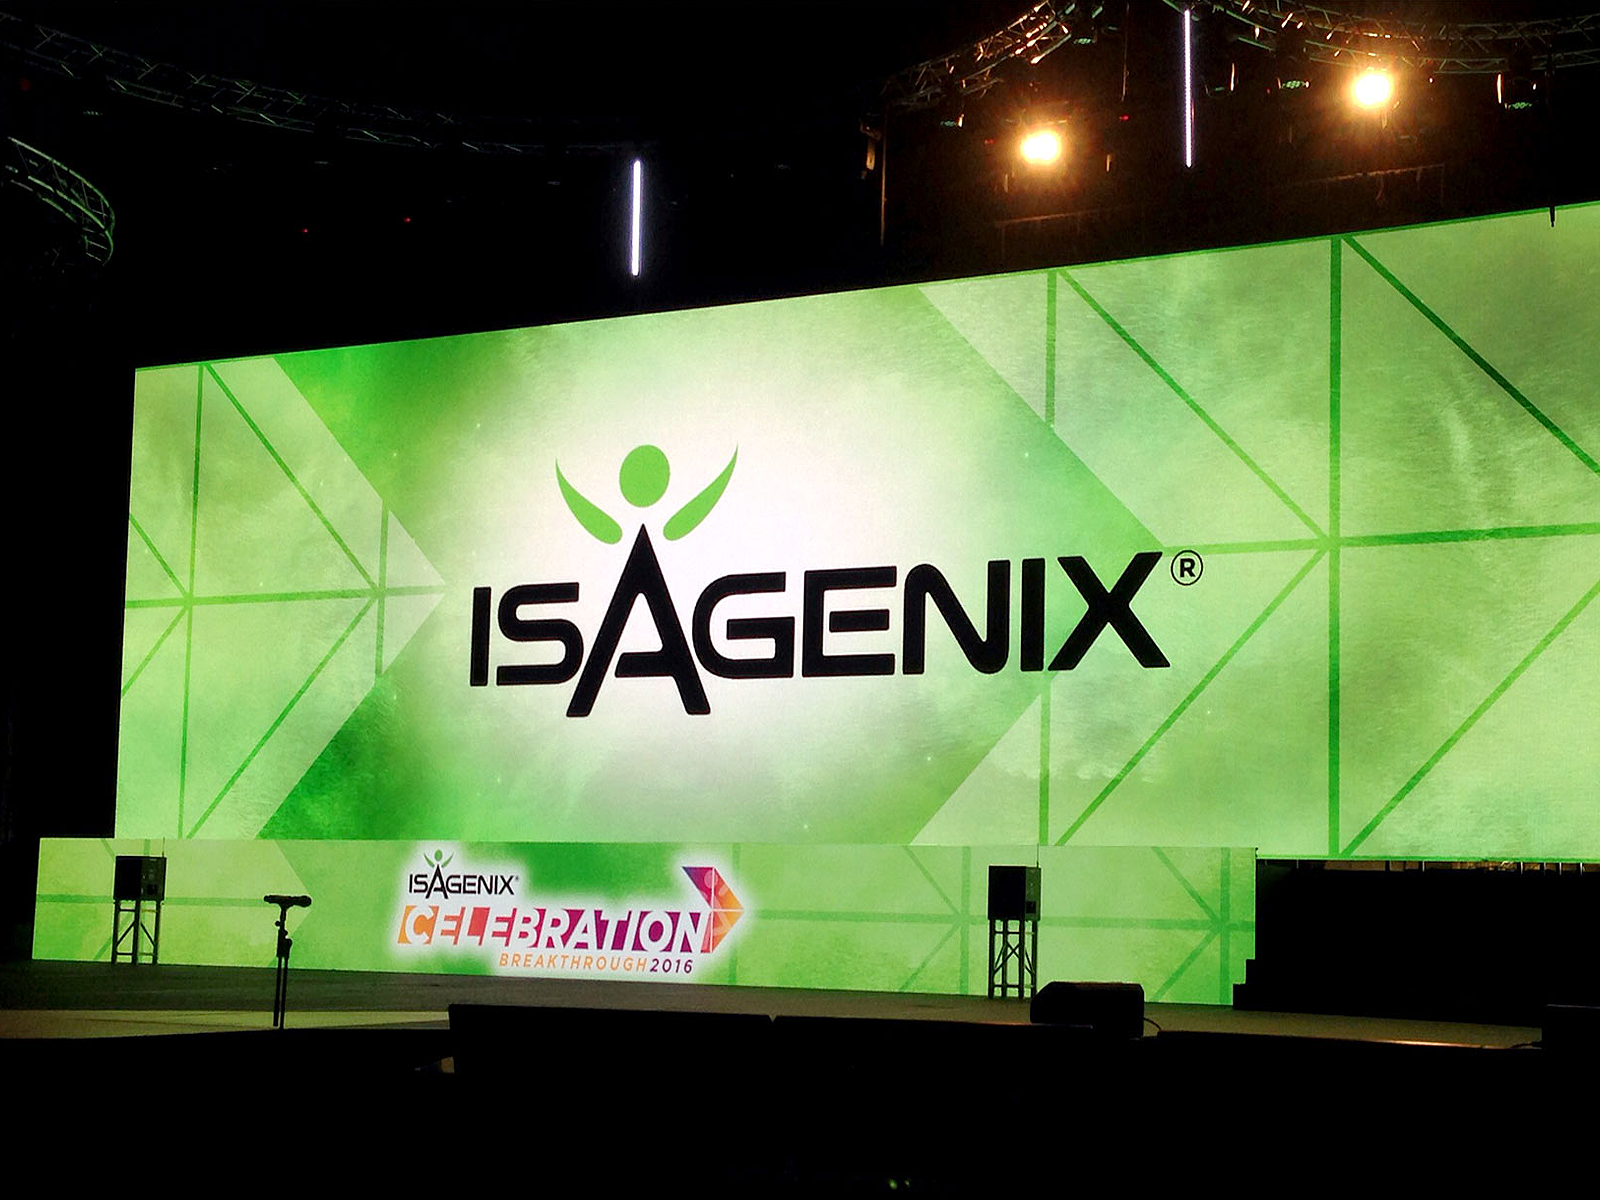 led vision isagenix breakthrough 2016